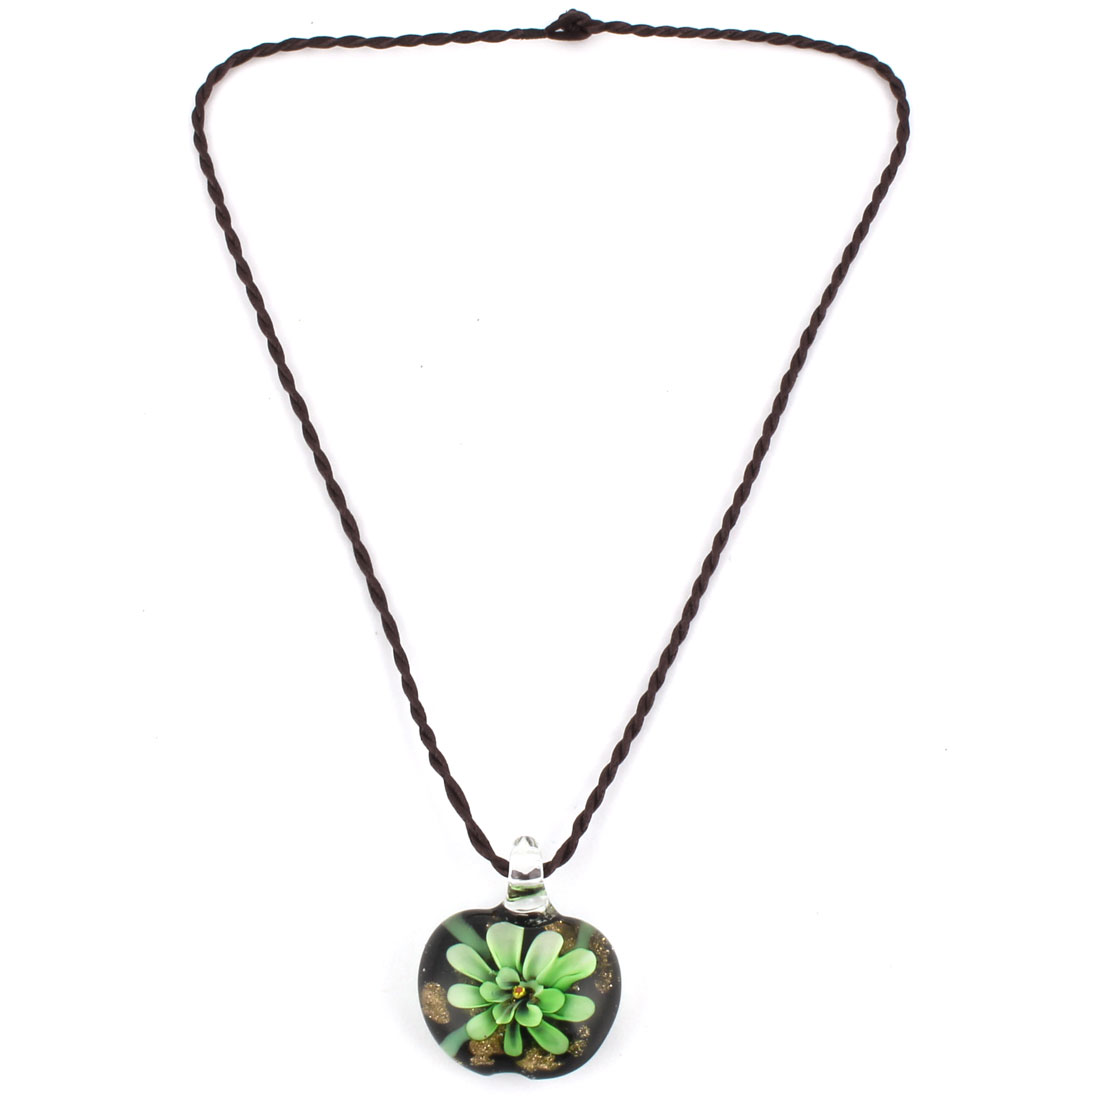 Travel Party Ladies Women Glass Flower Pattern Pendant Neck Ornament Necklace Green